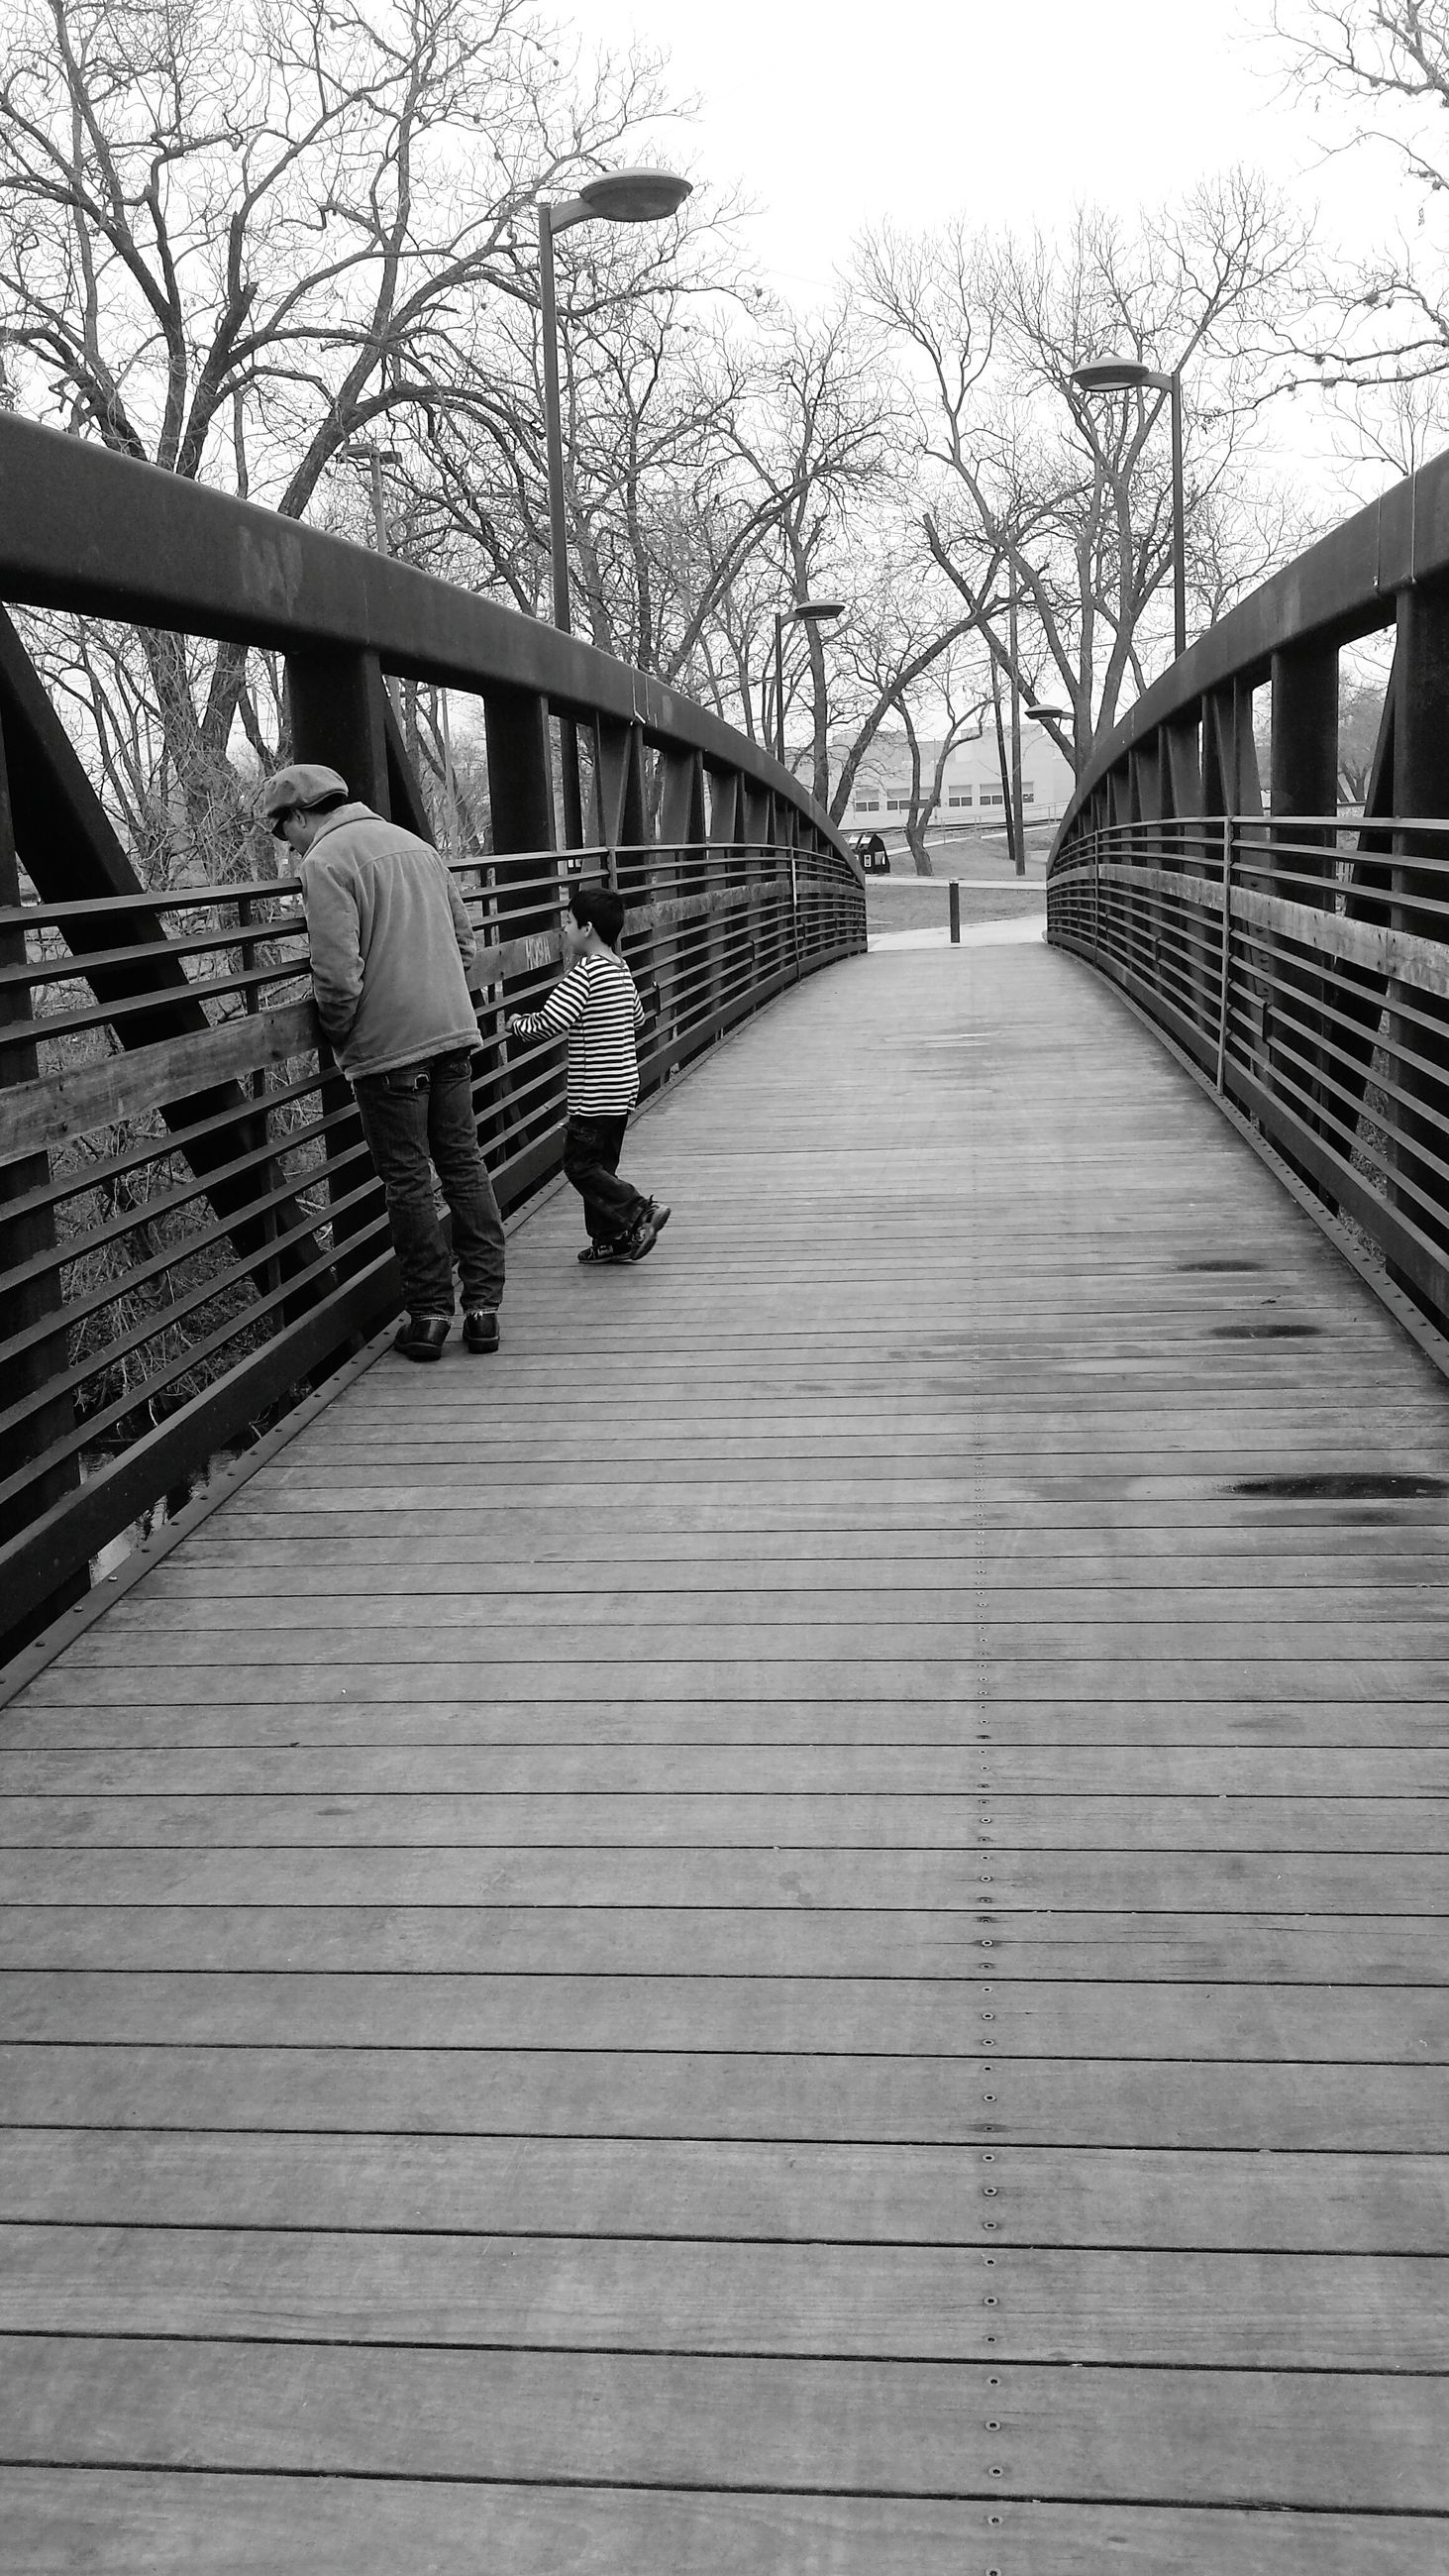 full length, railing, rear view, footbridge, the way forward, women, real people, bridge - man made structure, lifestyles, outdoors, walking, boardwalk, steps and staircases, day, one person, connection, steps, staircase, wood paneling, elevated walkway, people, sky, adult